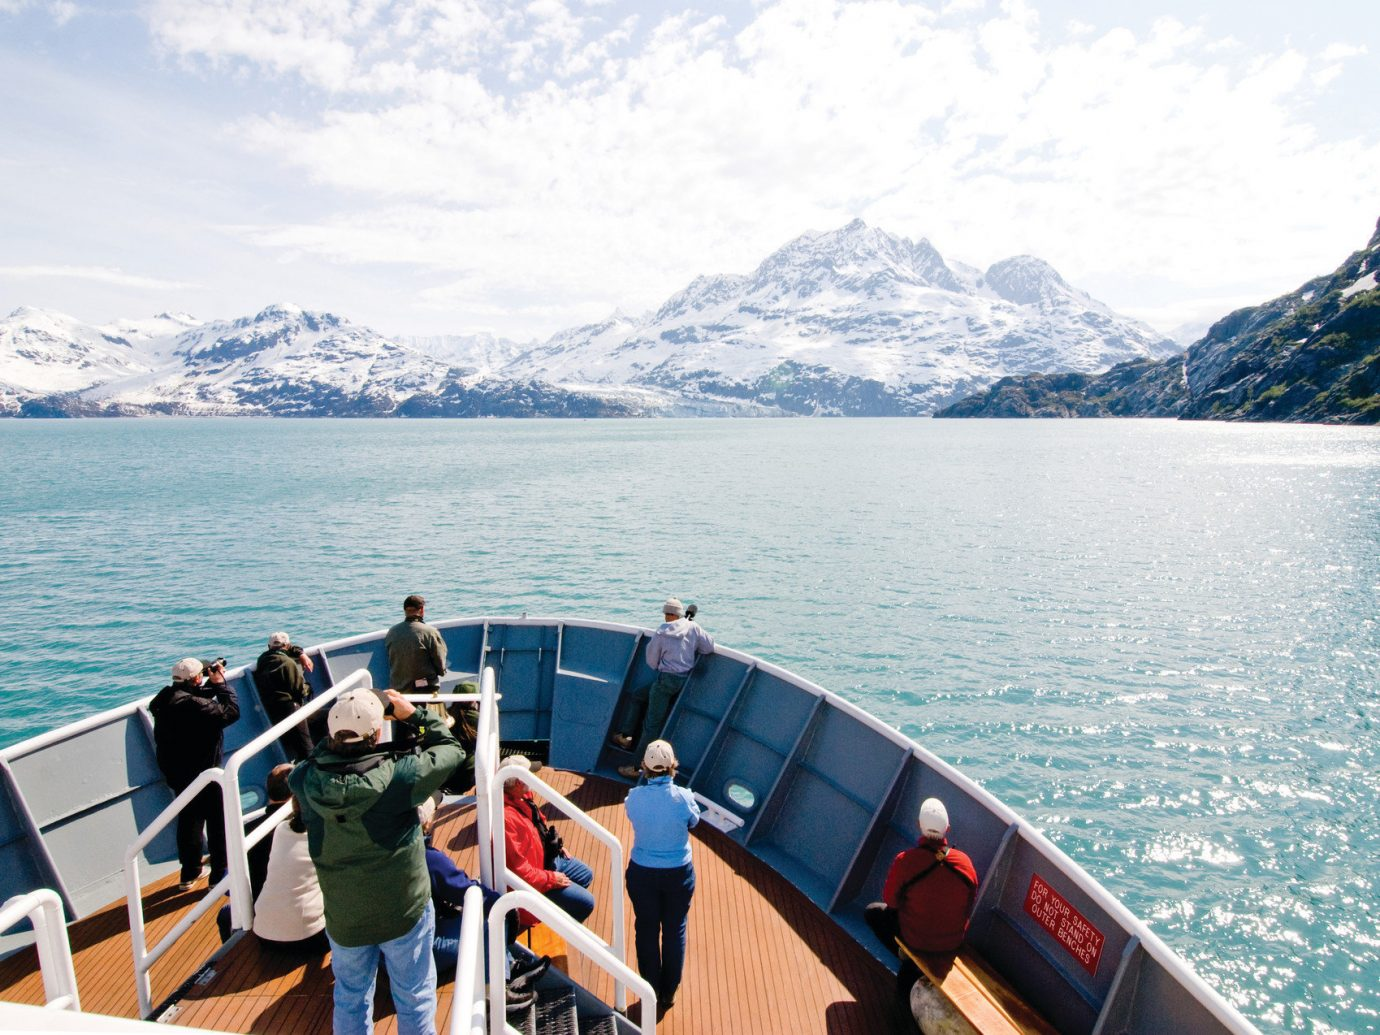 Trip Ideas water outdoor sky mountain Boat passenger ship vehicle Sea vacation fjord ferry watercraft Lake yacht bay boating cruise ship glacial landform ship overlooking